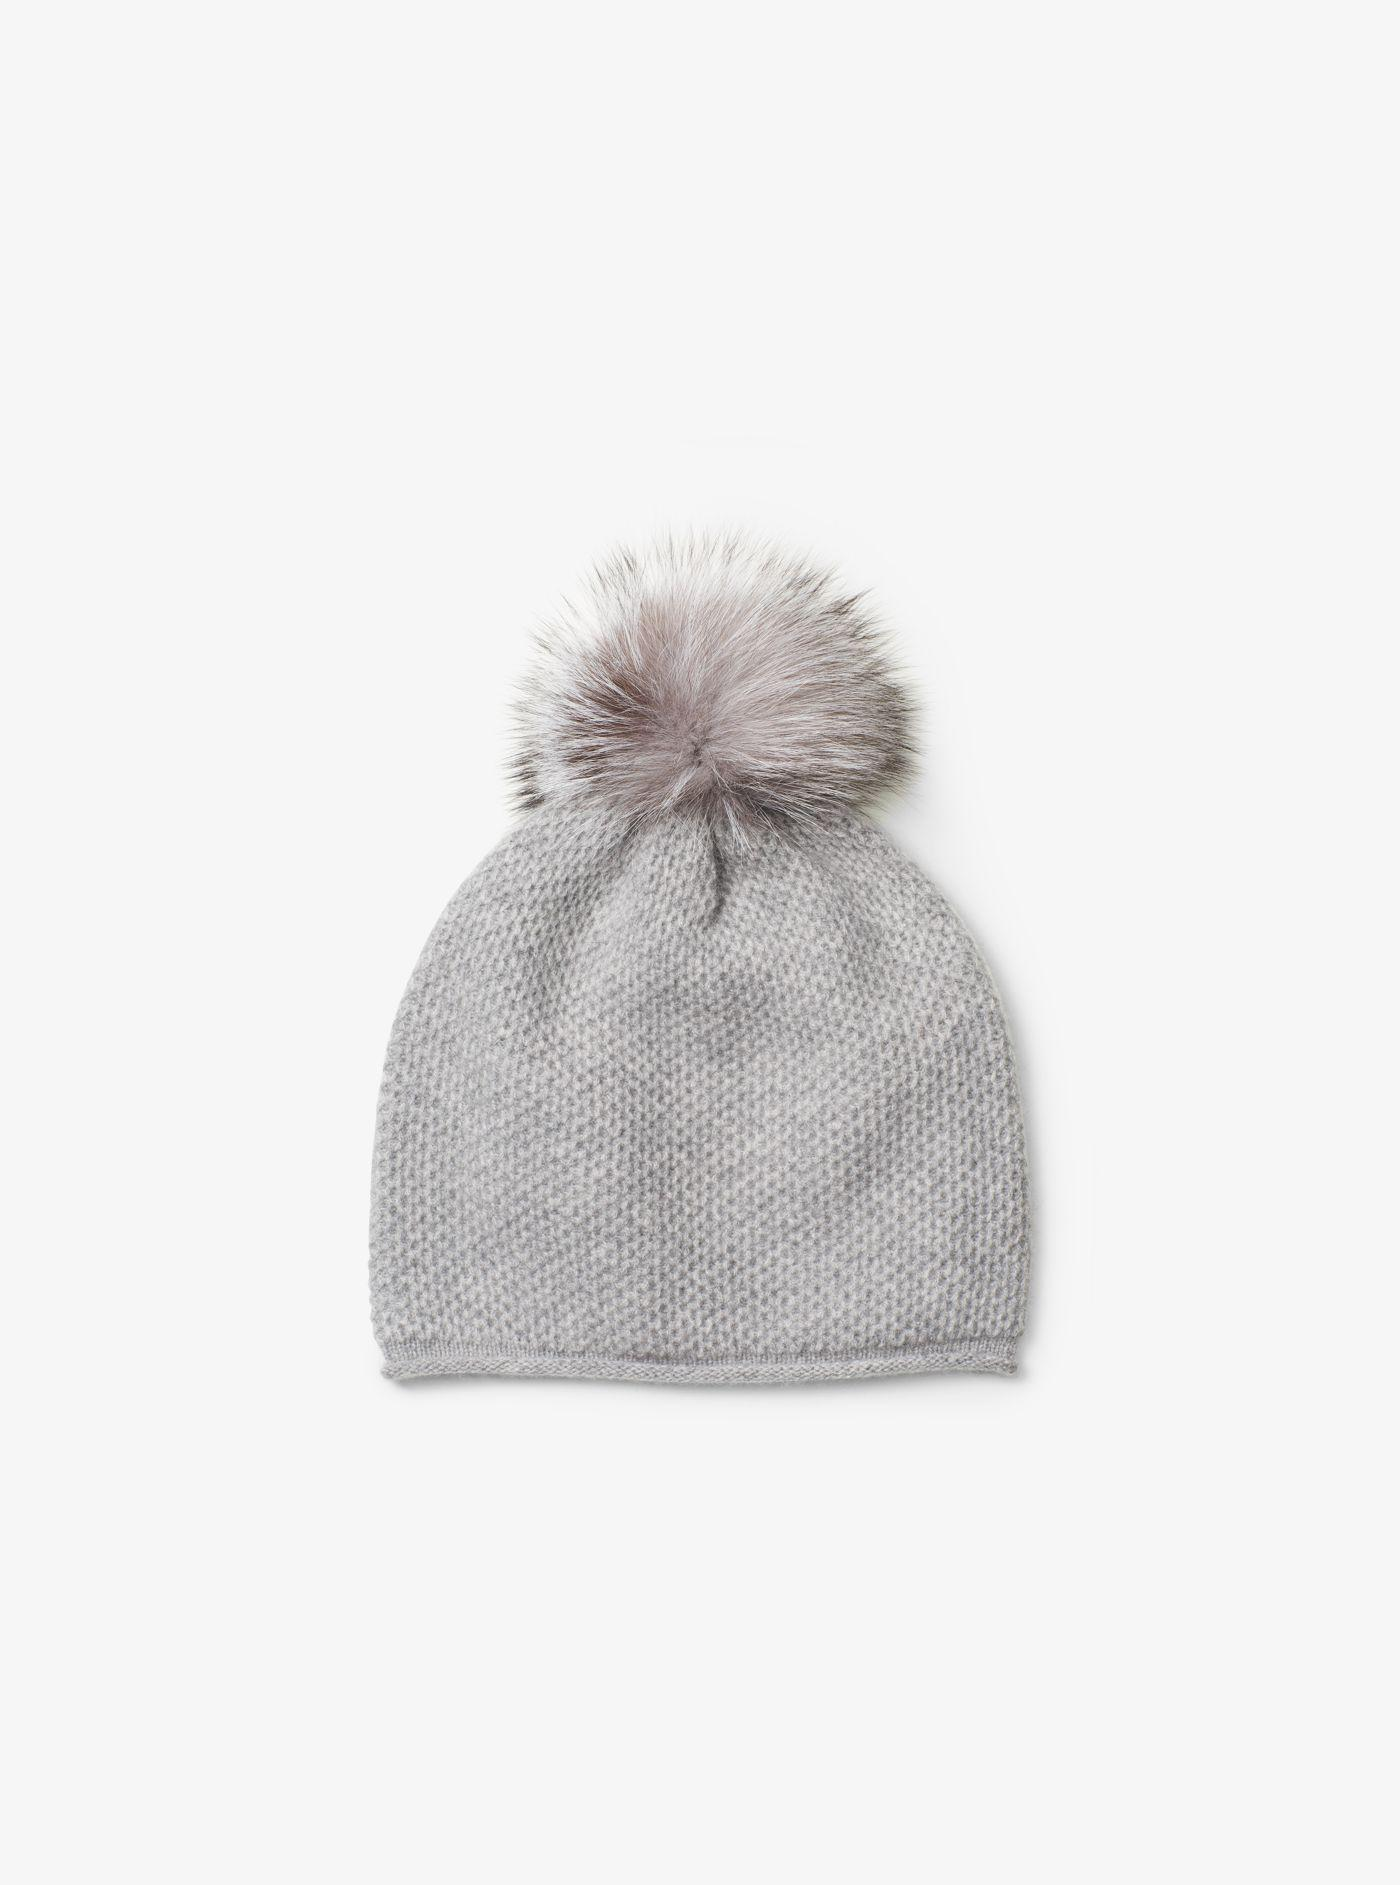 b12b8de2293 Lyst - Michael Kors Cashmere And Fur Pom-pom Beanie in Gray